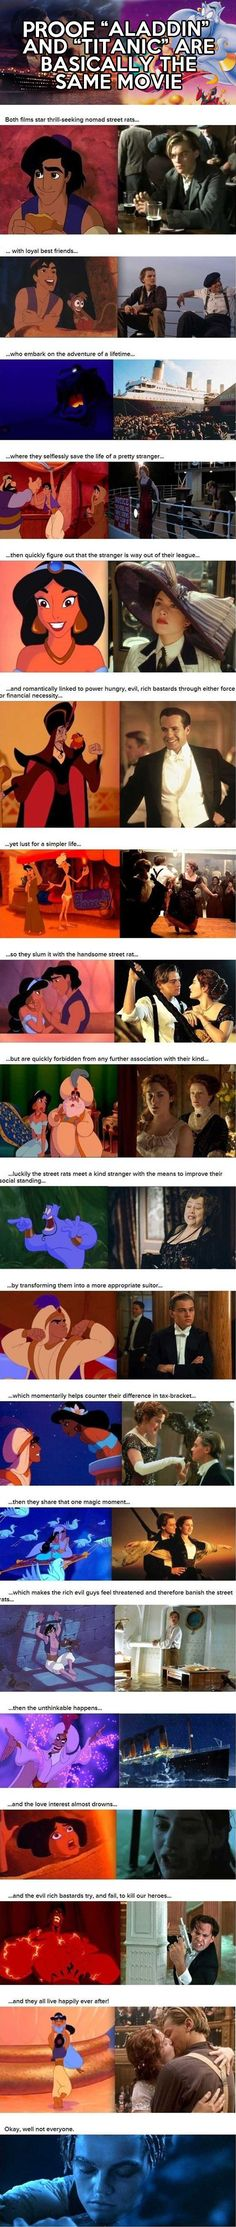 Aladdin vs. Titanic..... Titanic doesn't end happily ever after unless you're fucking demented and see it that way... in which case... get help.